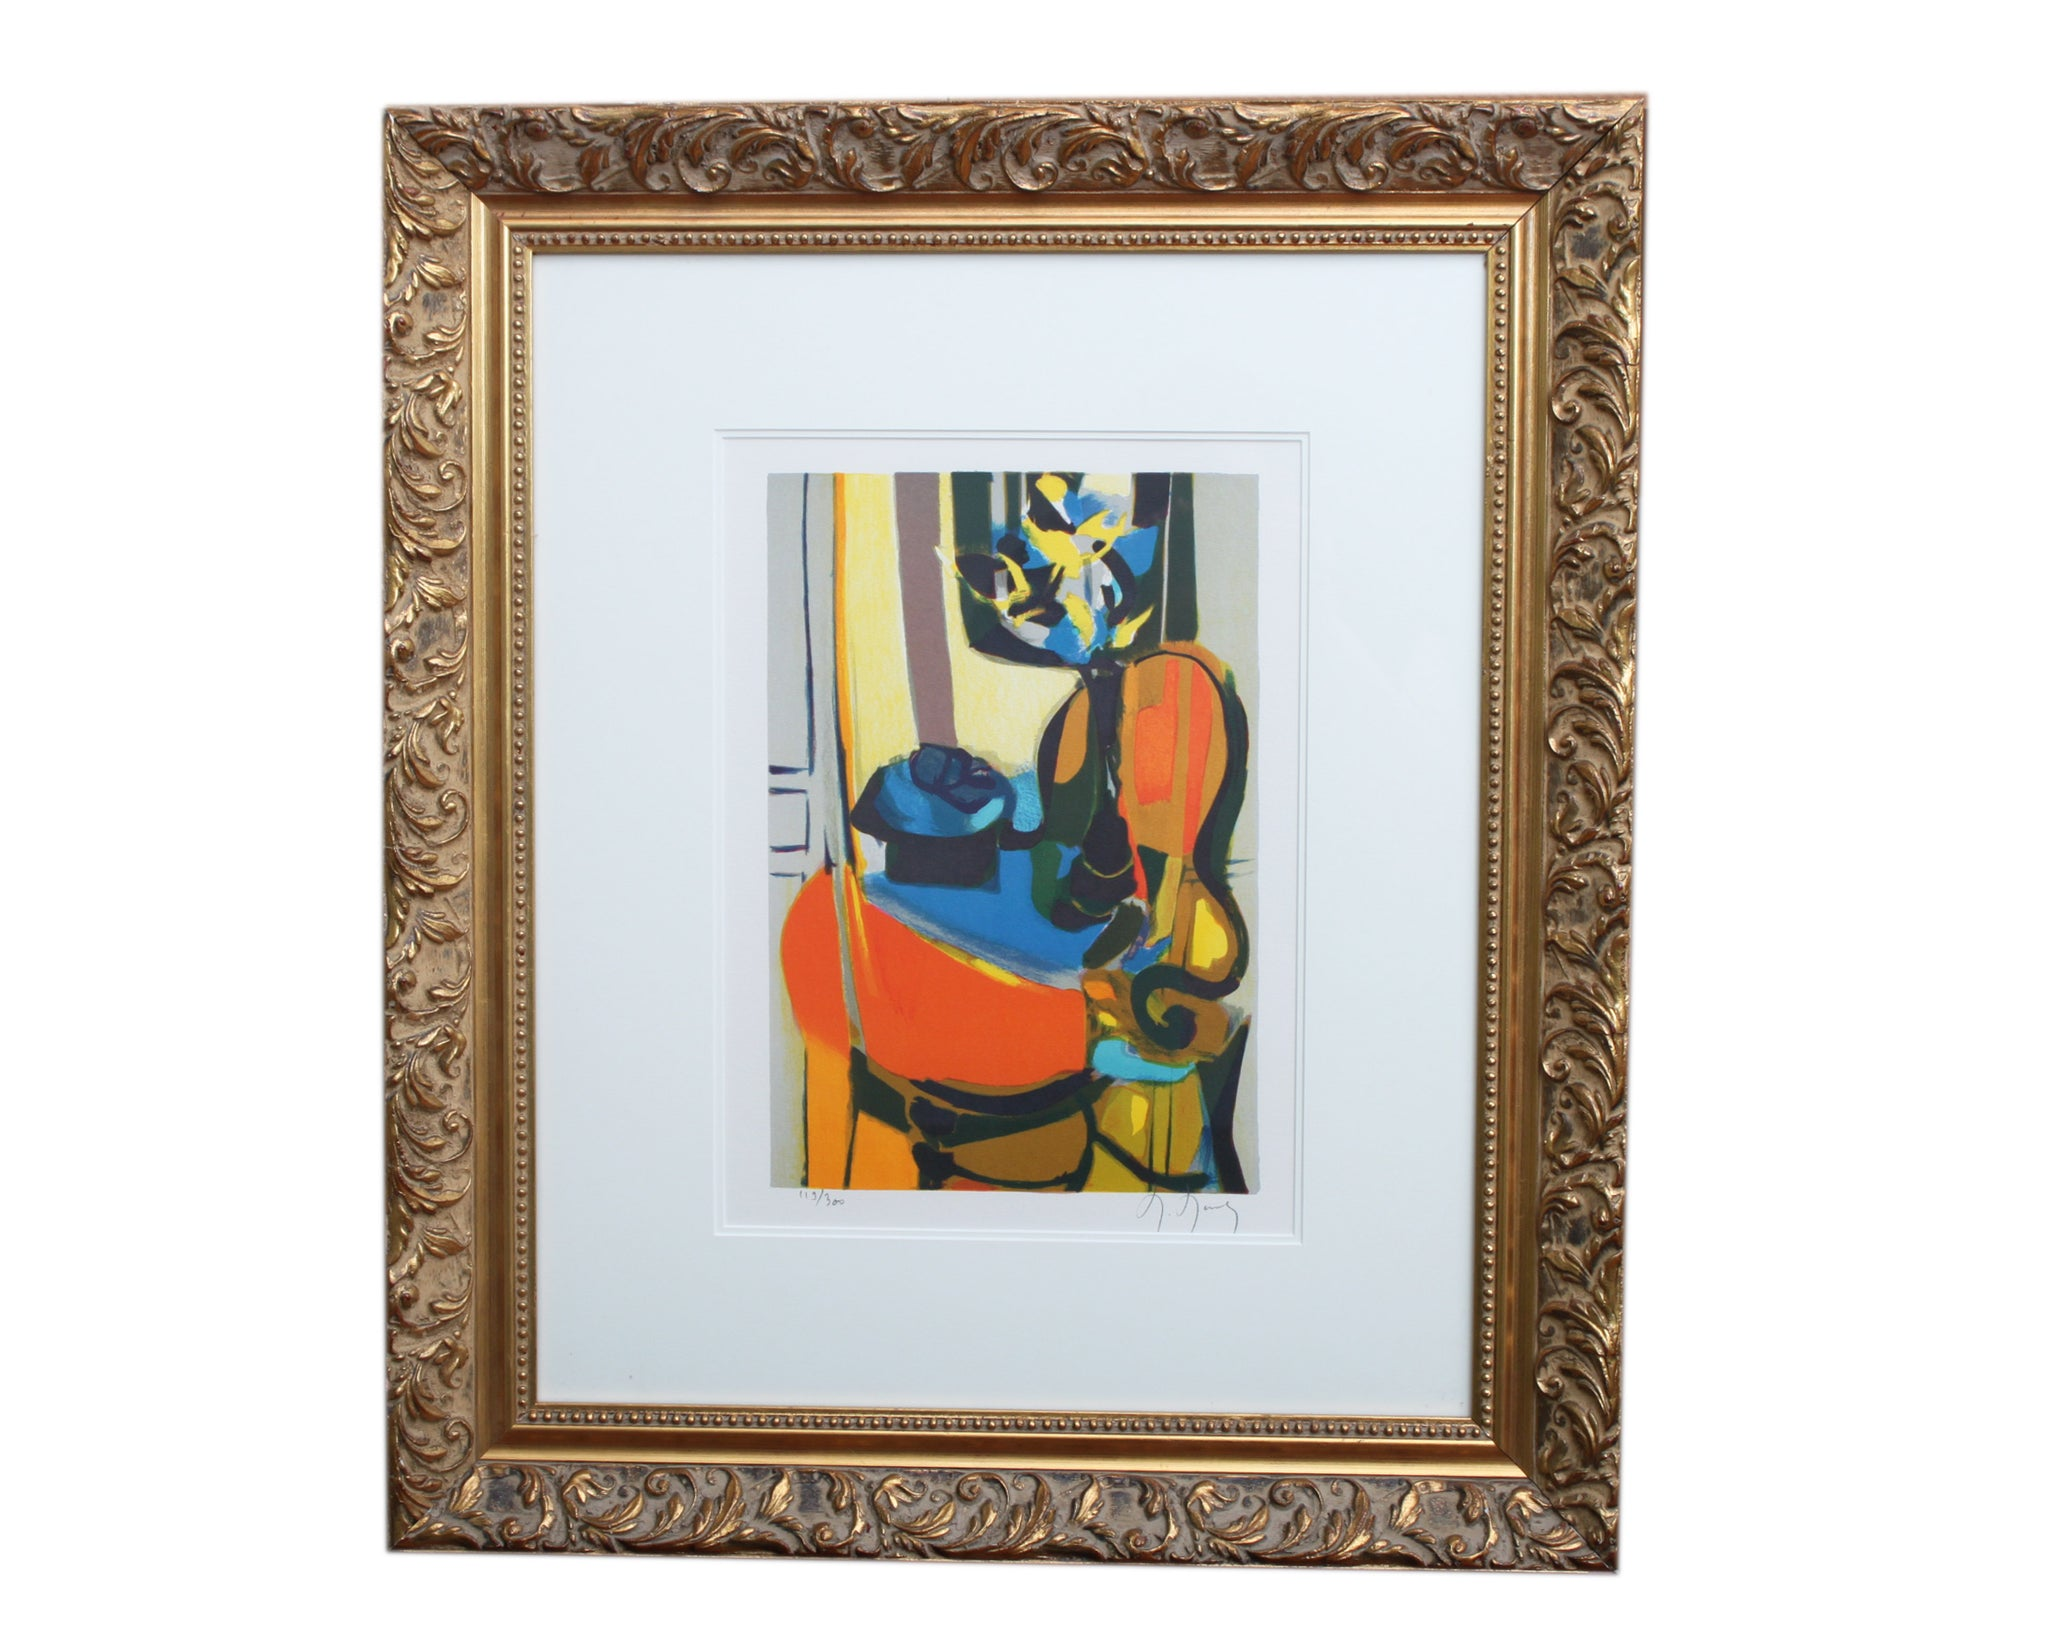 Marcel Mouly Signed Limited Edition Still Life Lithograph